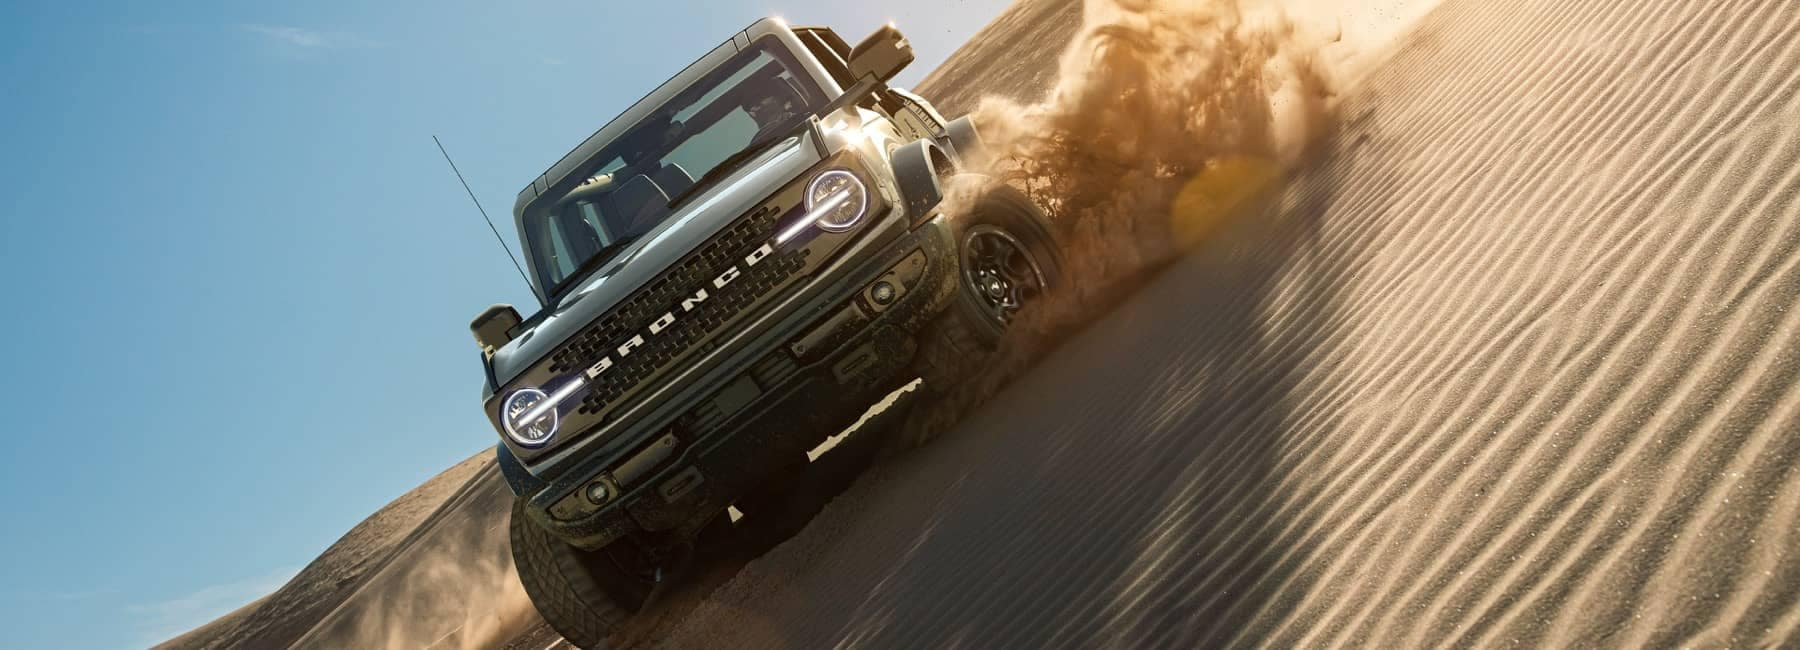 2021 Ford Bronco in Cactus Gray being driven on a sand dune